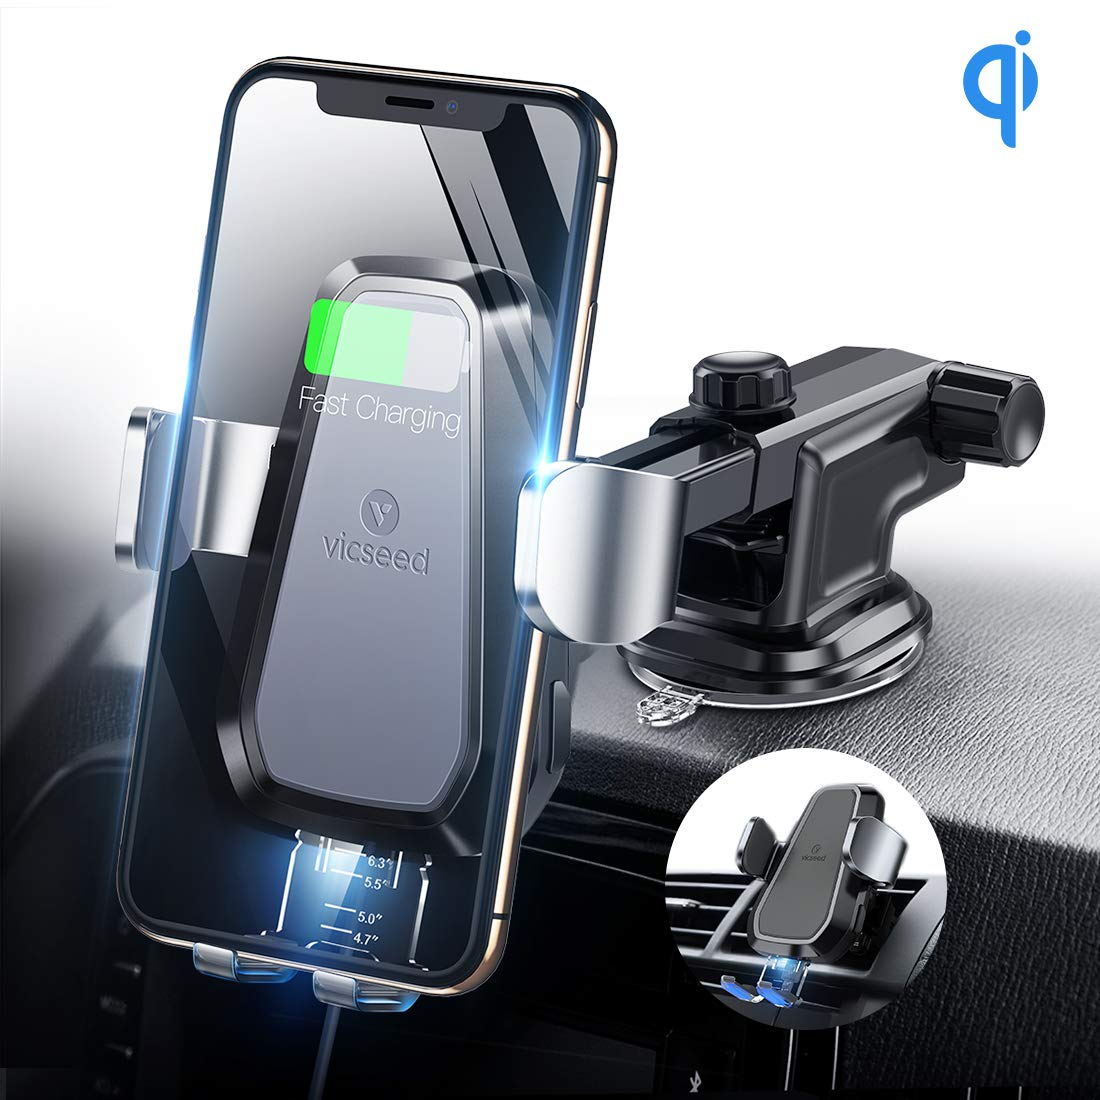 VICSEED Qi Wireless Car Charger, 10W Fast Wireless Charging Car Mount, Auto-Clamping Wireless Car Holder Fit for iPhone 11 Max Pro Xs Max Xs Xr 8 8 Plus, Fit for Samsung Galaxy Note 9 S9 S9 Plus by VICSEED